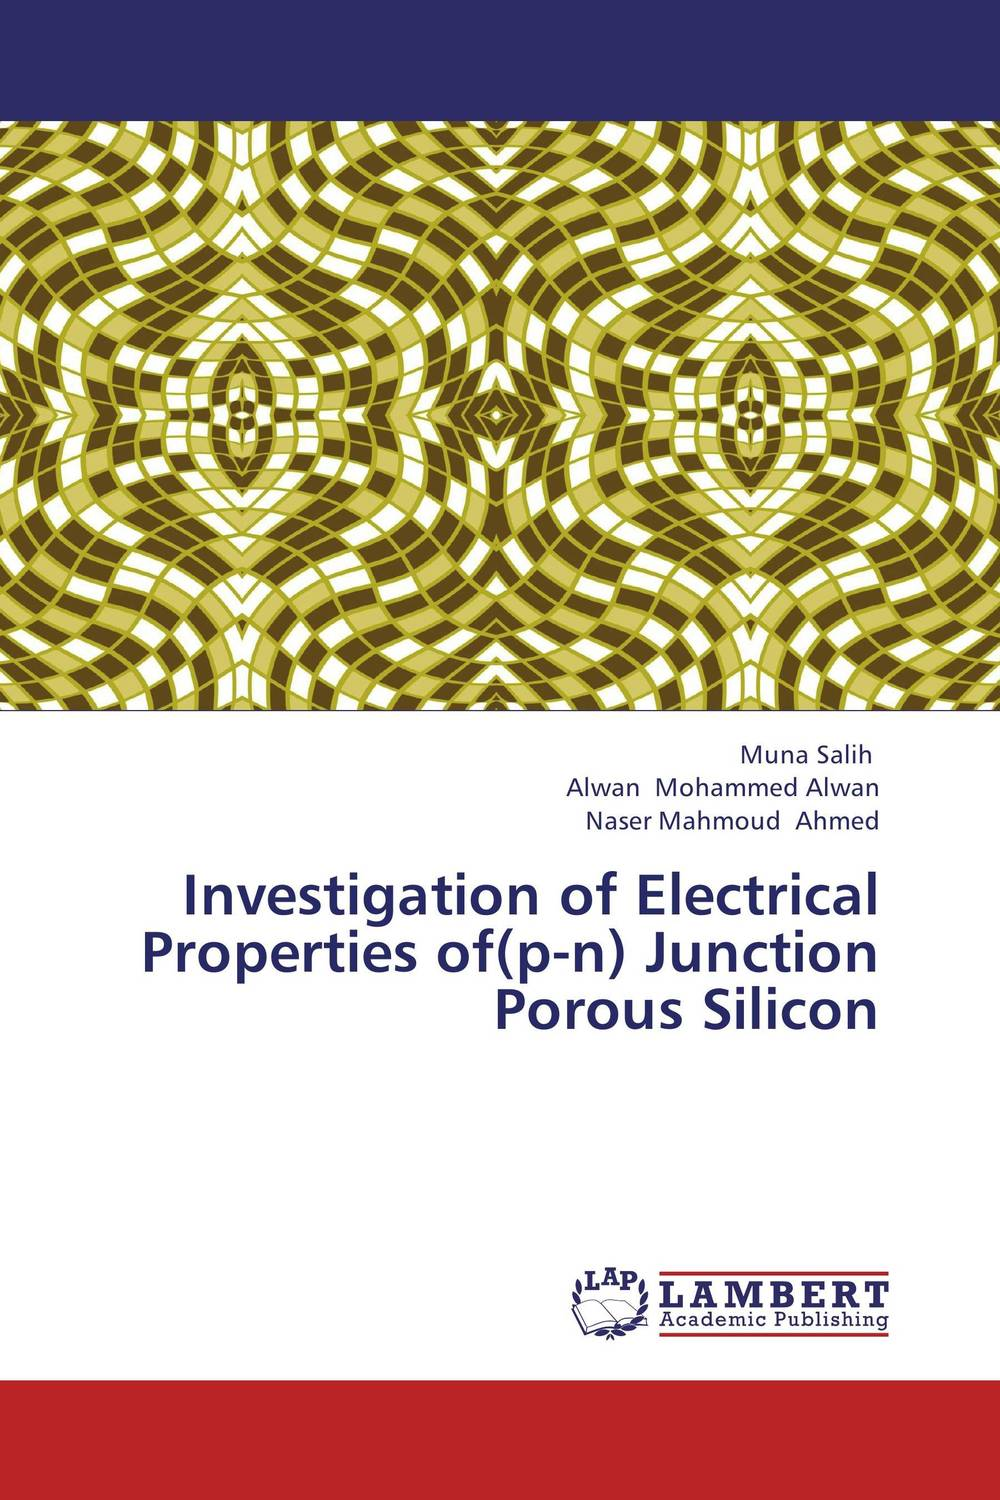 Investigation of Electrical Properties of(p-n) Junction Porous Silicon krishen kumar bamzai and vishal singh perovskite ceramics preparation characterization and properties